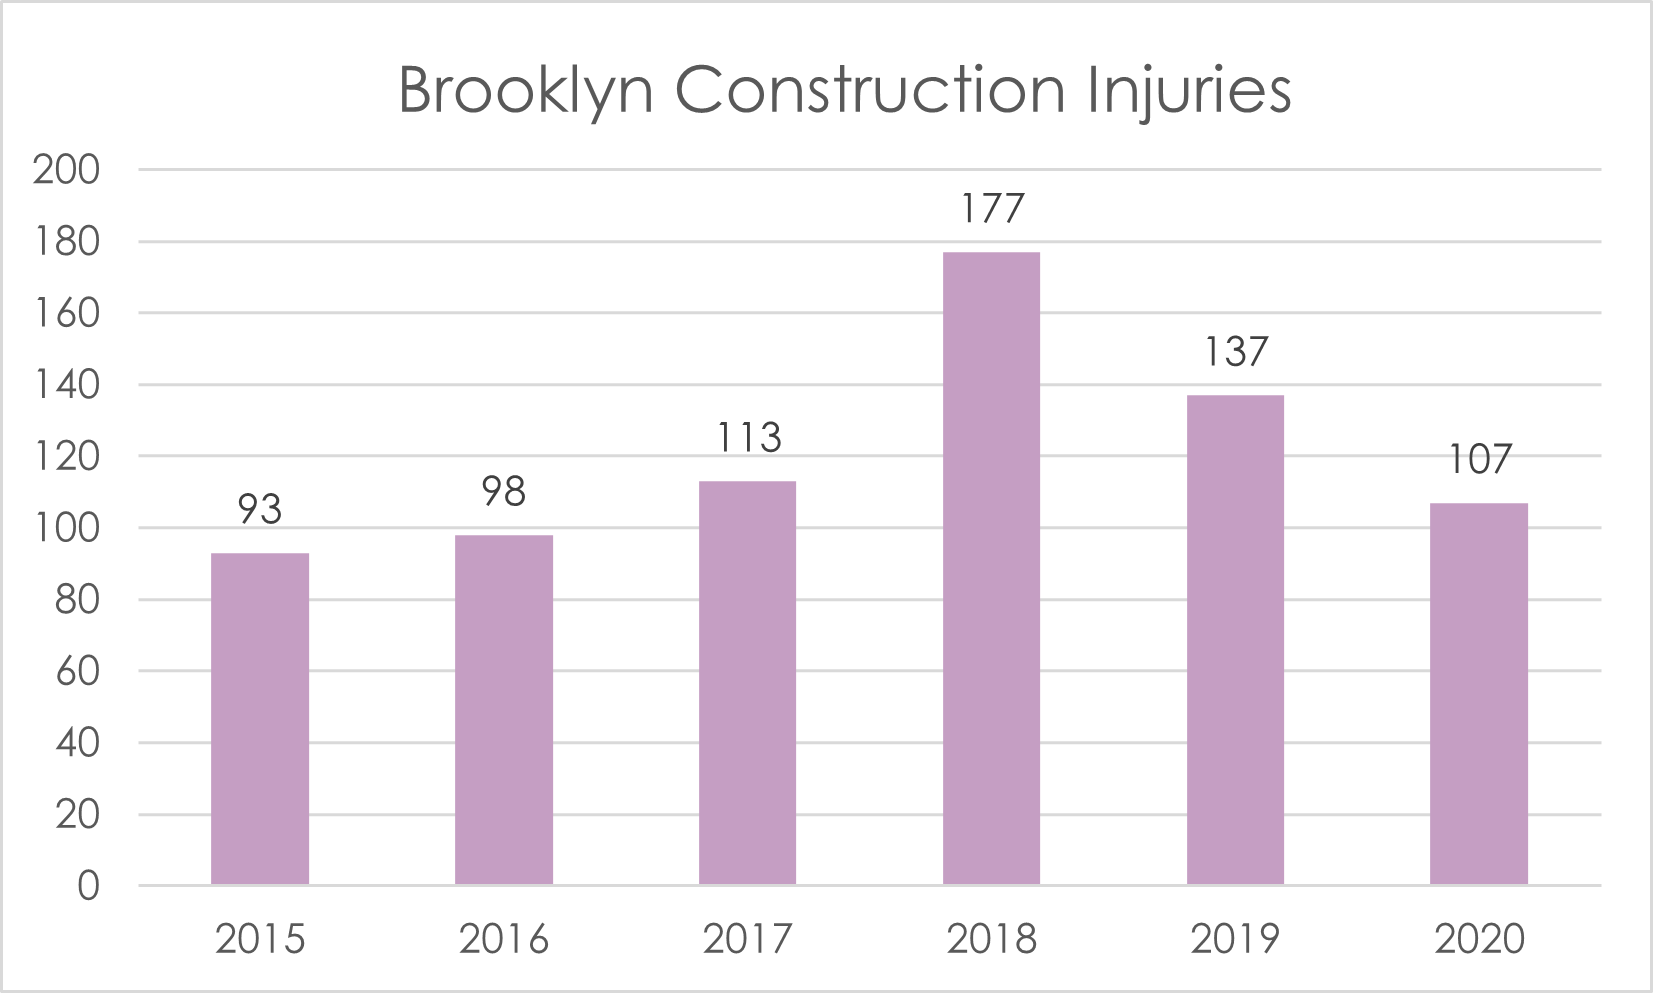 Construction accident injuries 2020 Brooklyn